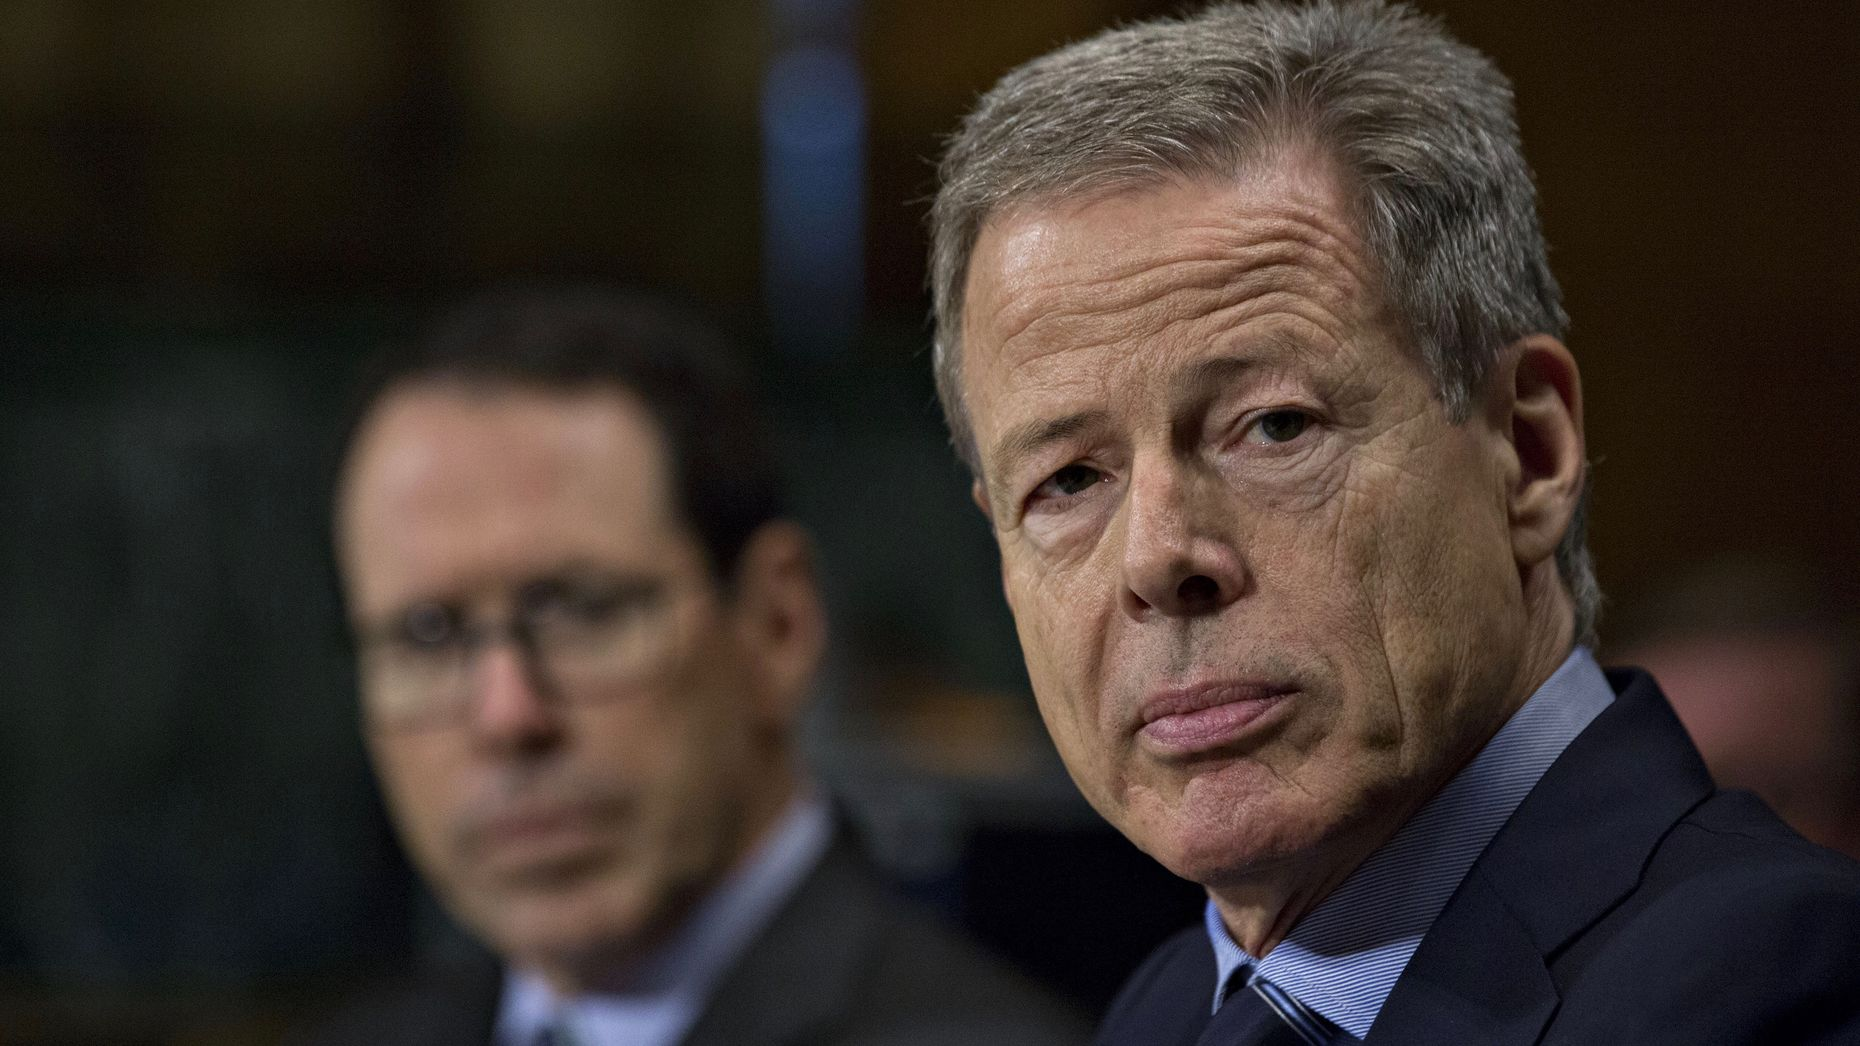 Time Warner's then CEO Jeff Bewkes, in the foreground, with AT&T CEO Randall Stephenson at a congressional hearing in December 2016. Photo by Bloomberg